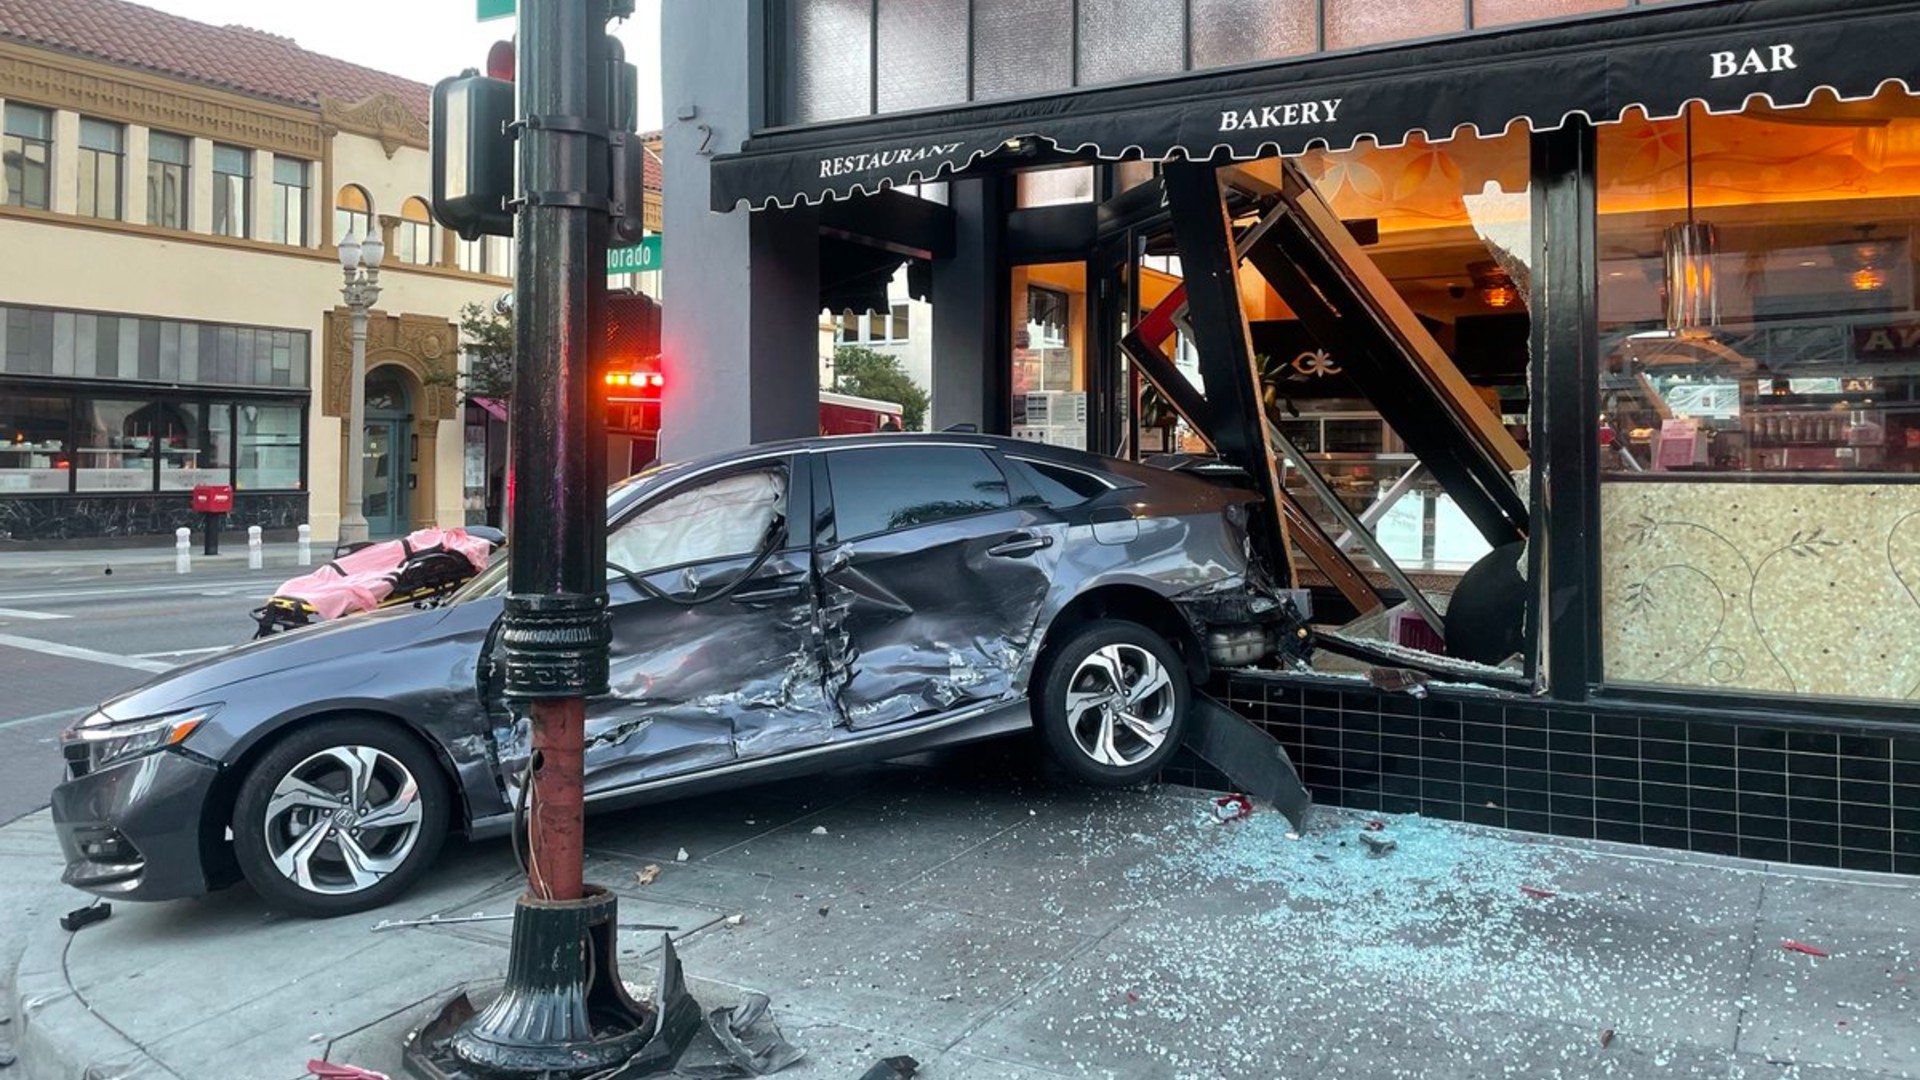 A car careened into the storefront of the Cheesecake Factory in Old Town Pasadena on Tuesday morning after a collision in an intersection.(Pasadena Fire Department )